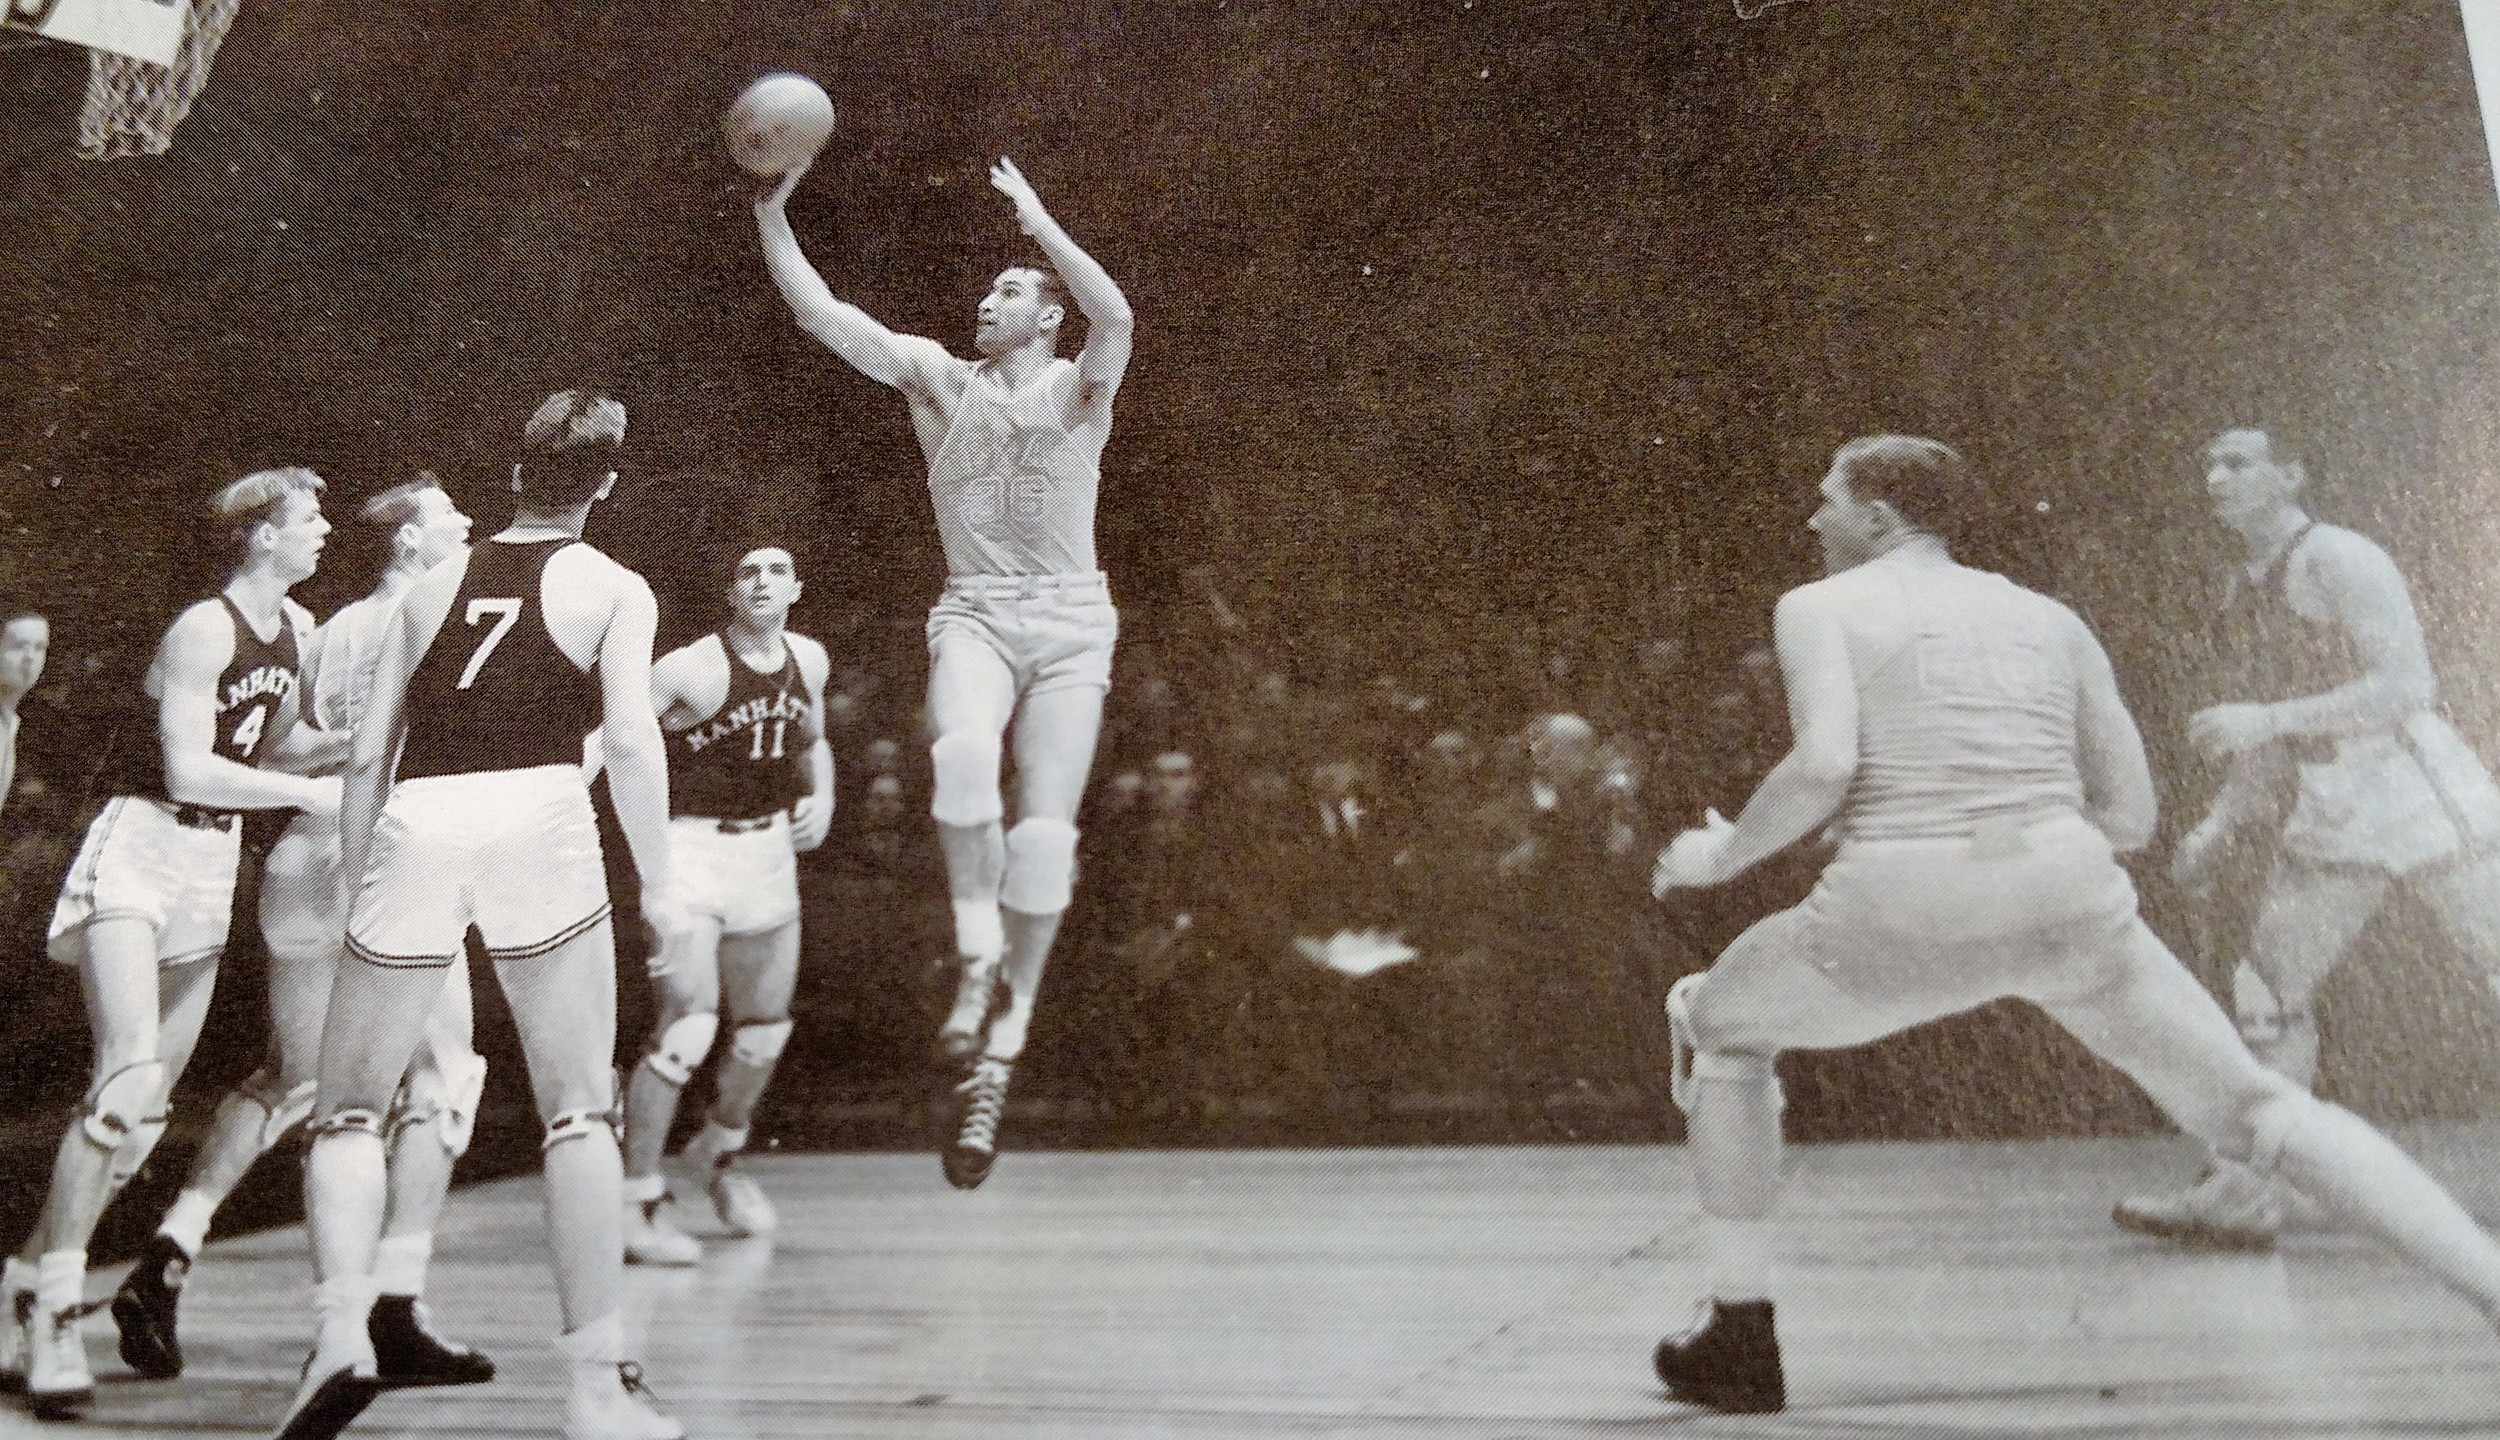 In the era of the two hand shot Oran Spears one handed shot perfected by Jerry Gray was a novelty technique of shooting